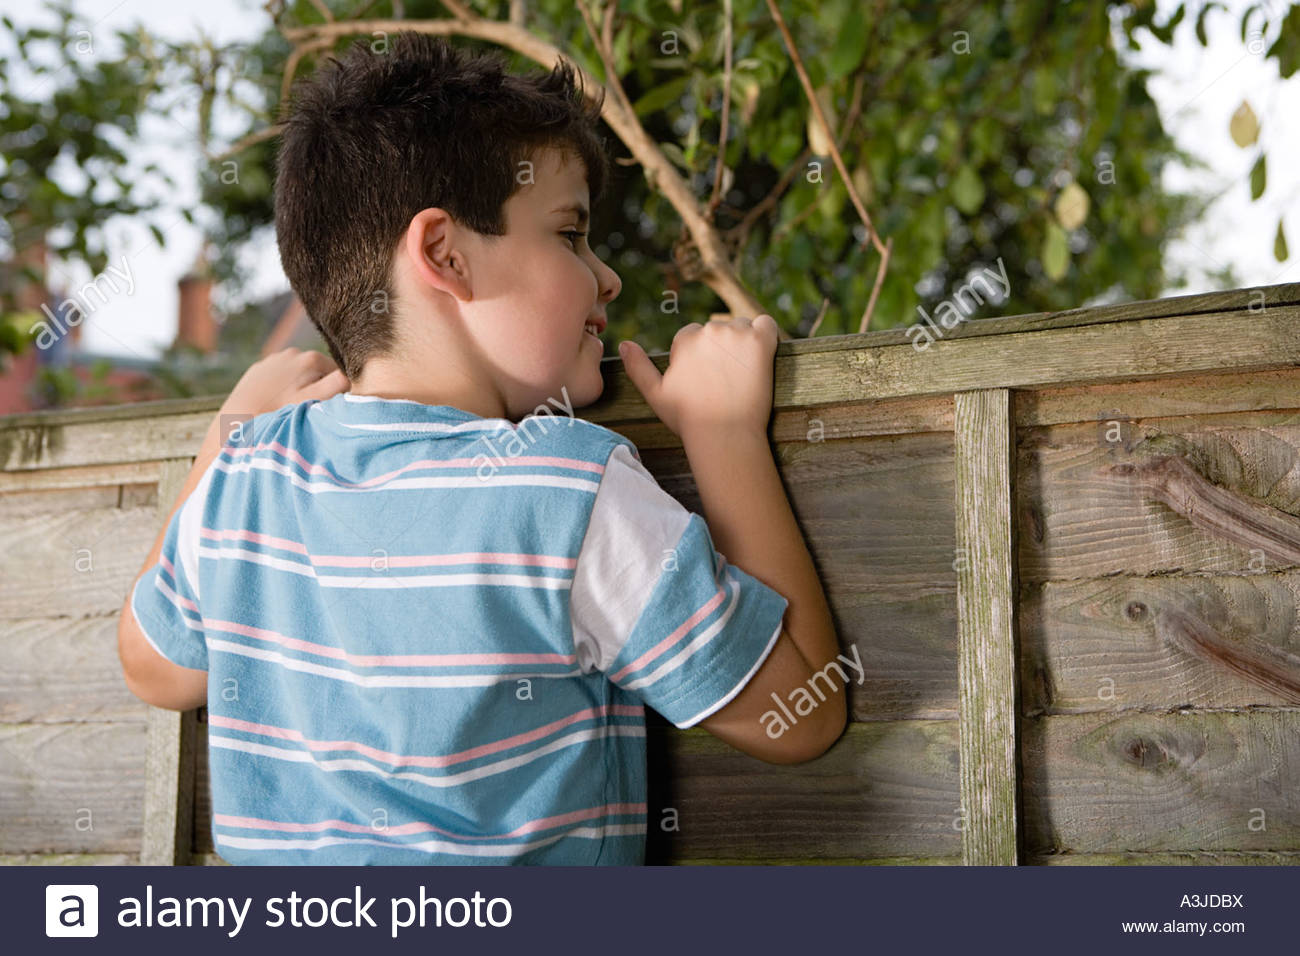 Boy looking over fence - Stock Image